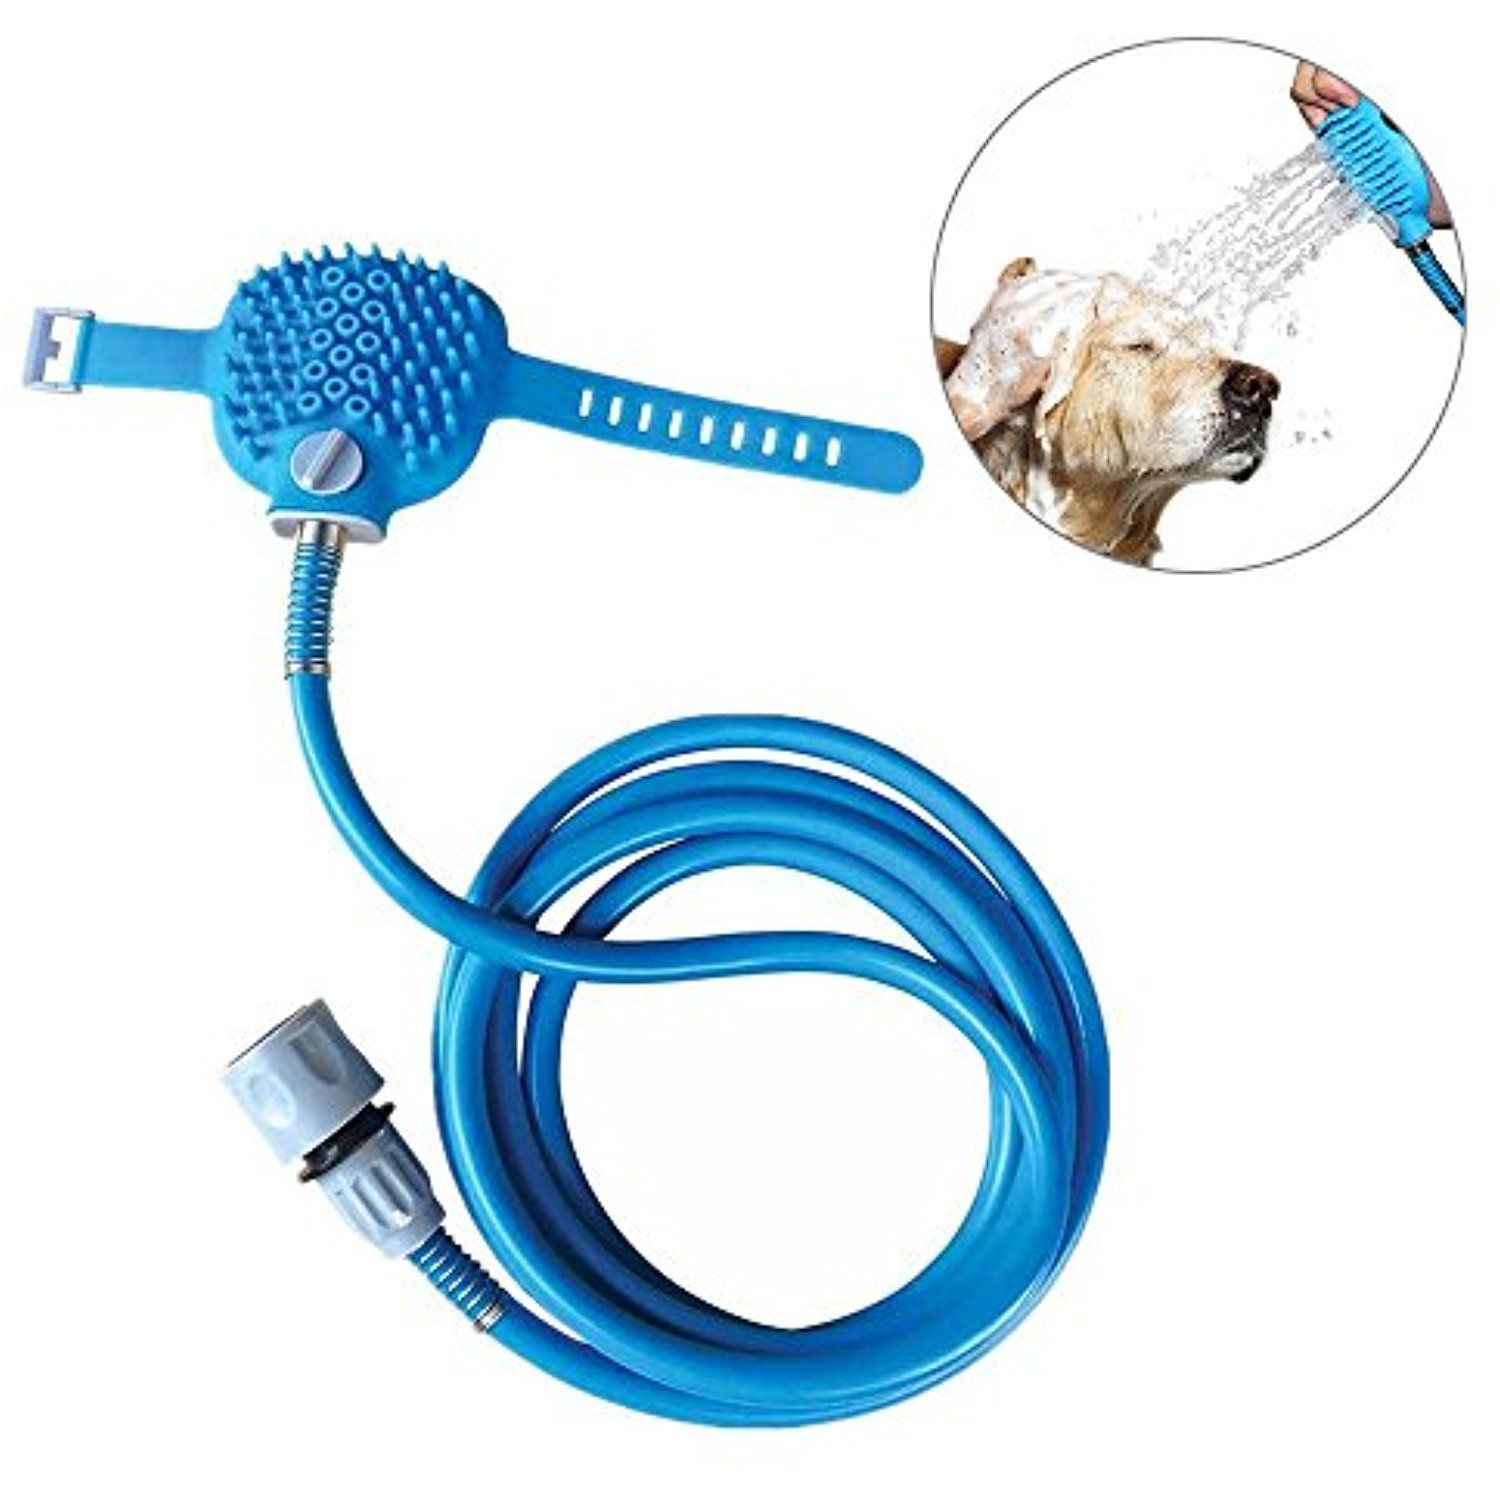 2-IN-1 Unit Pet Shower Sprayer, Sprayer and Scrubber Pet Bathing ...